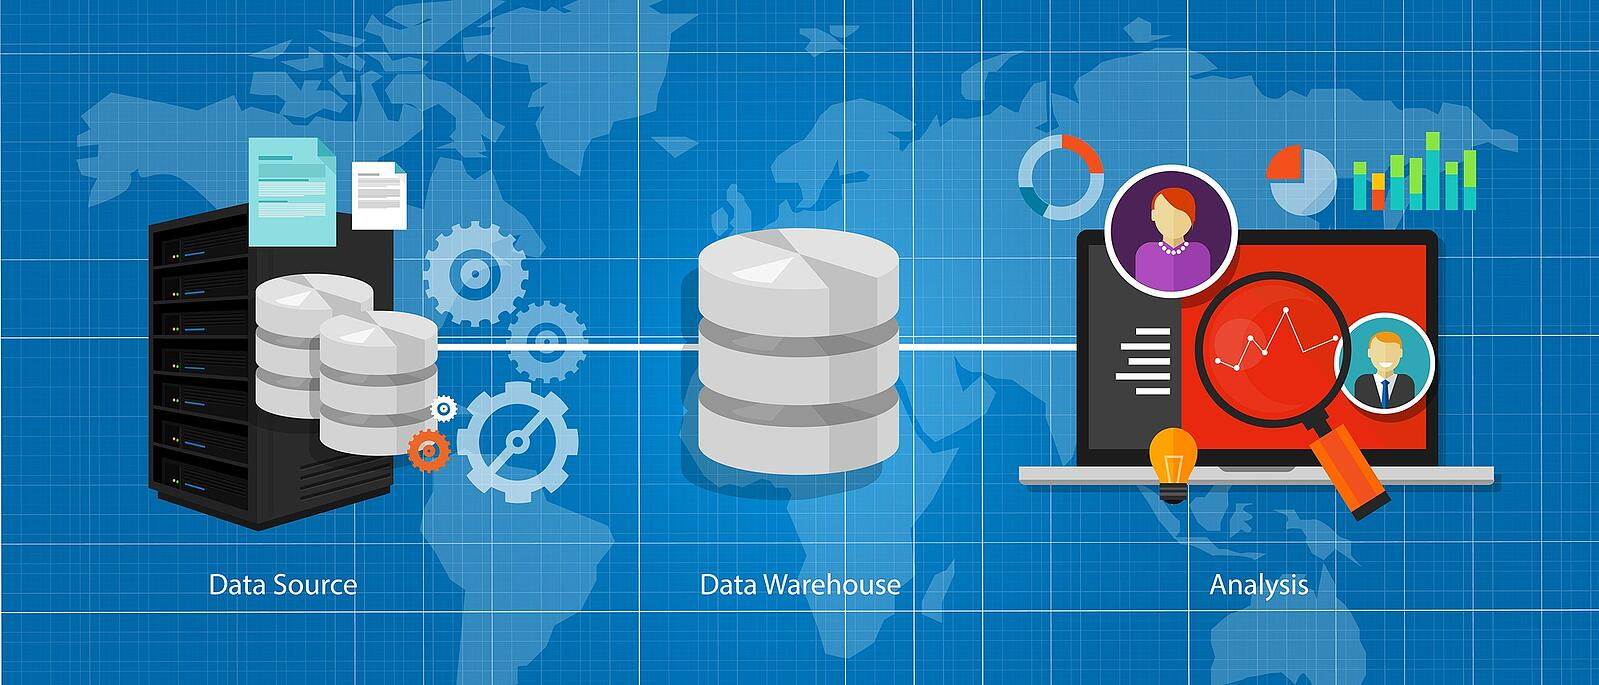 a description of the use of data warehouse in decision making process